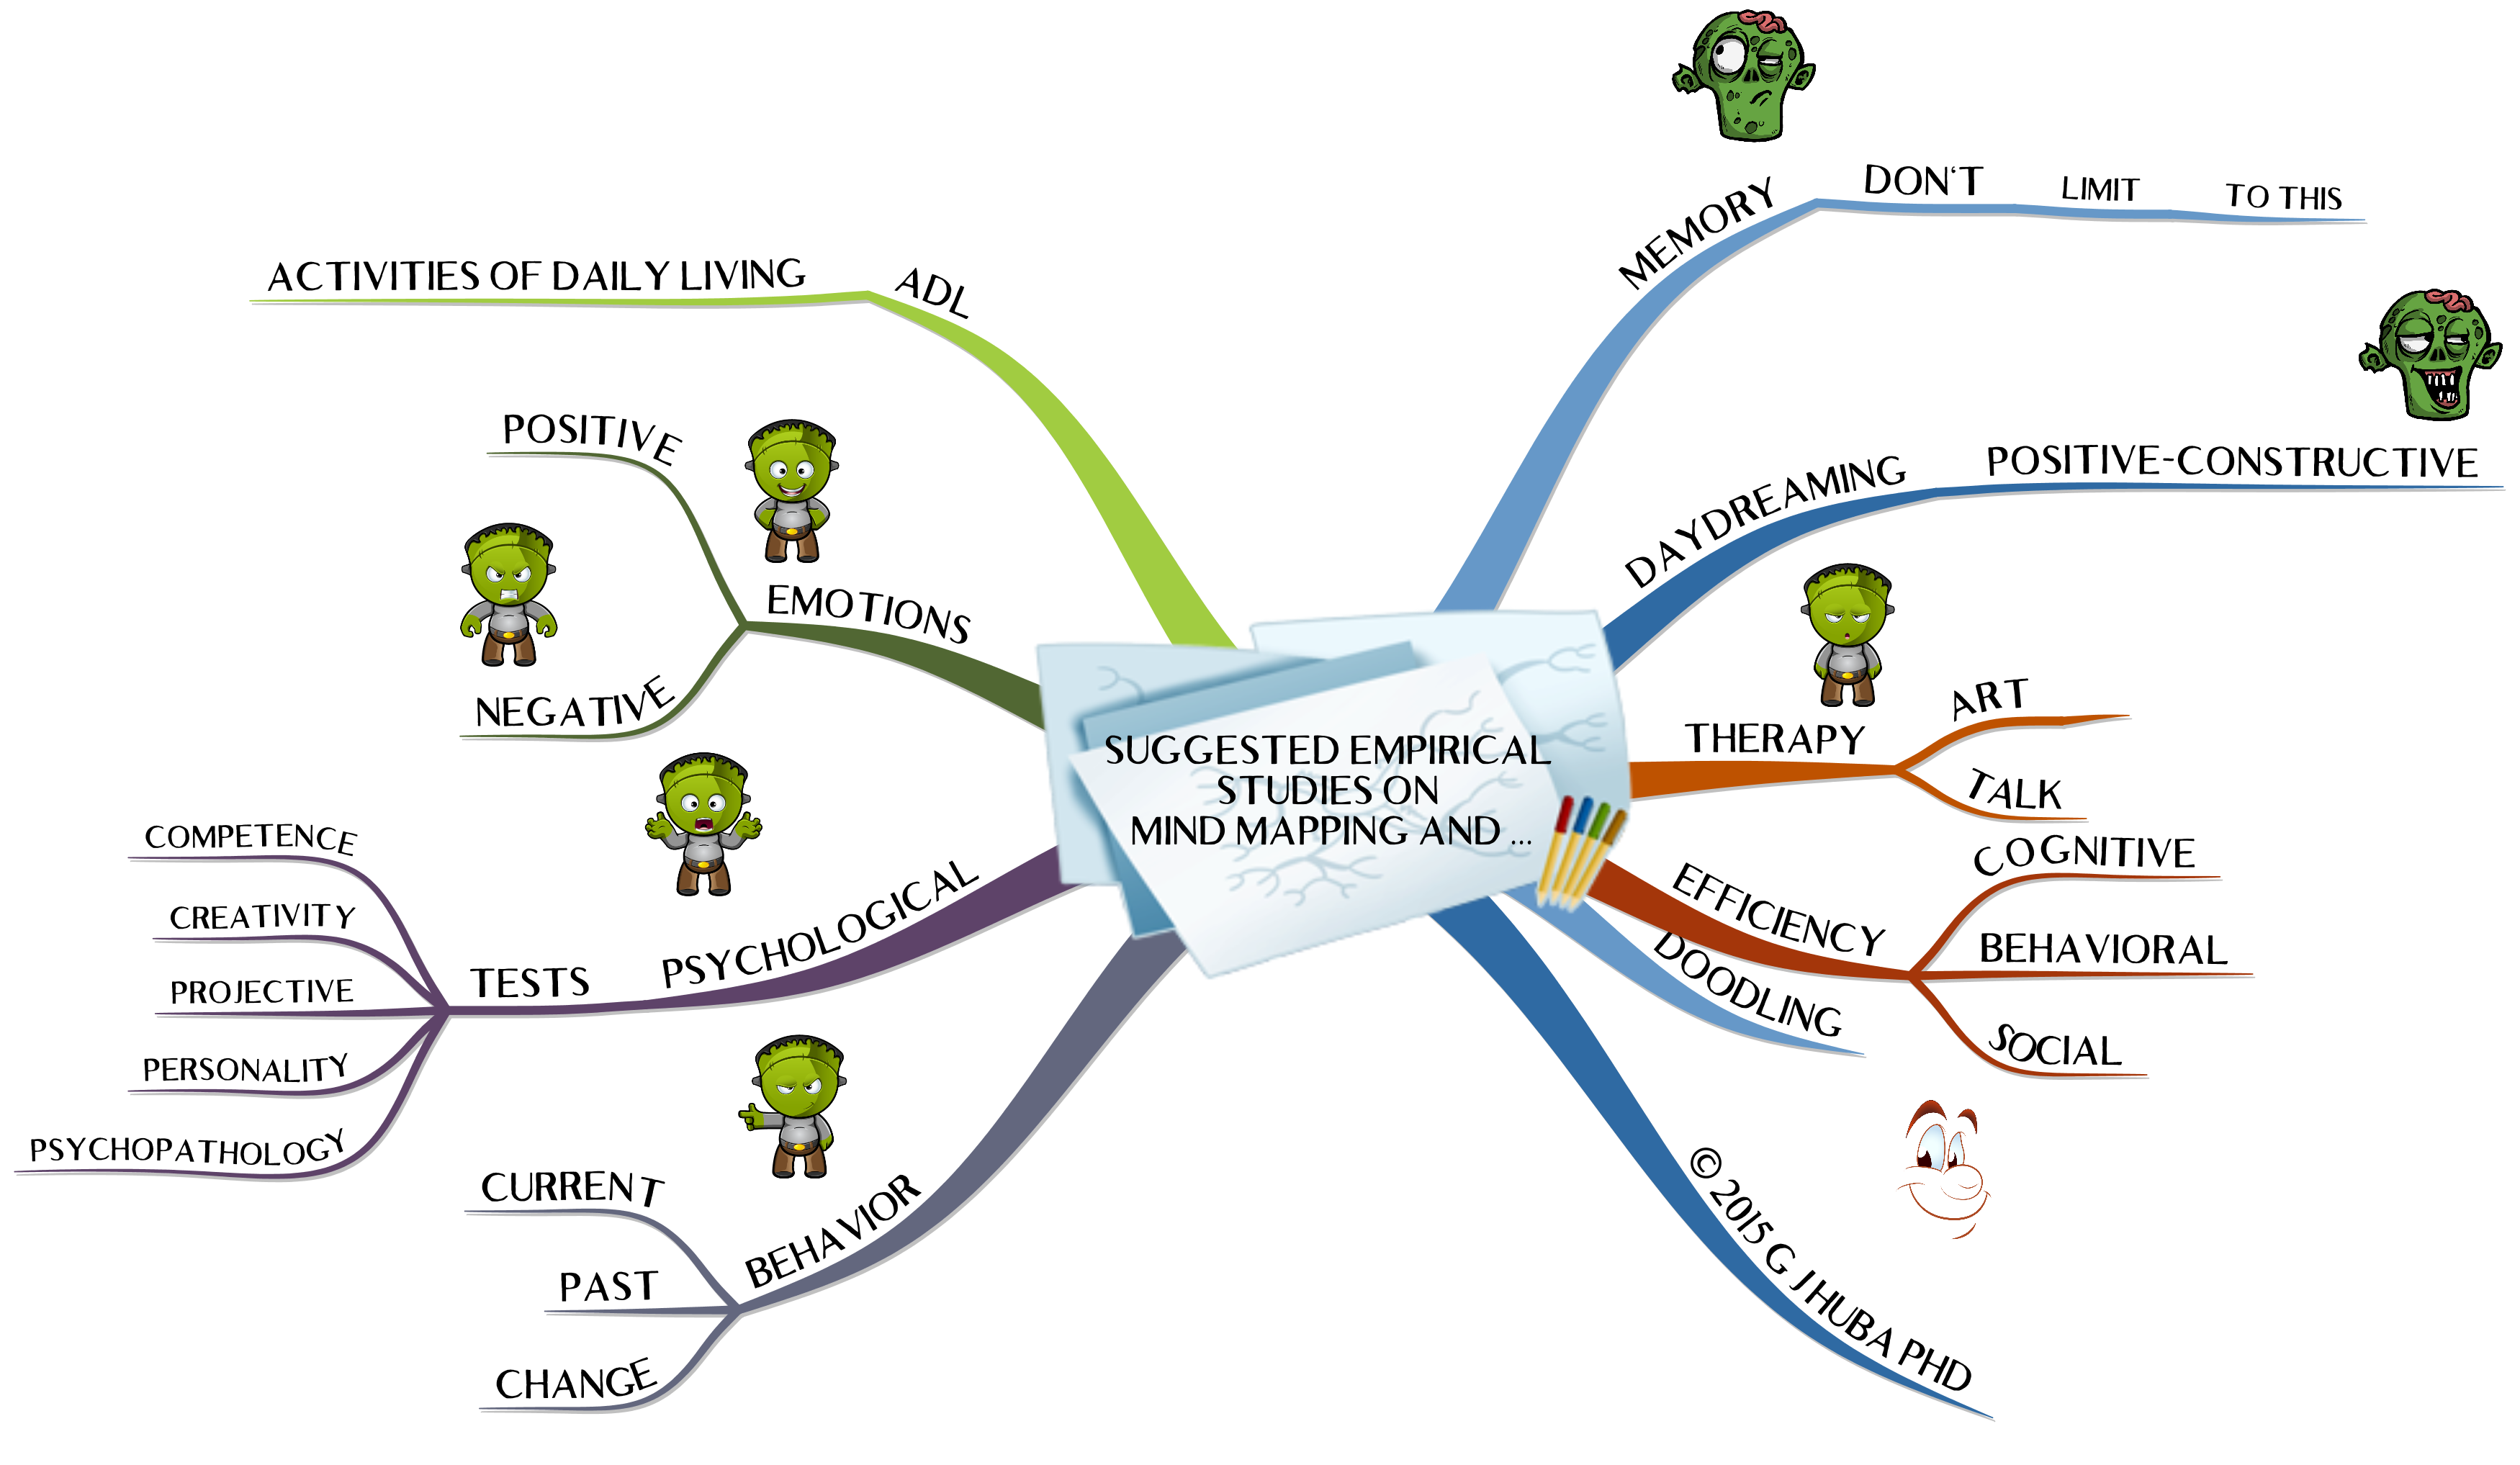 3Suggested Empirical Studies on  Mind Mapping and ...